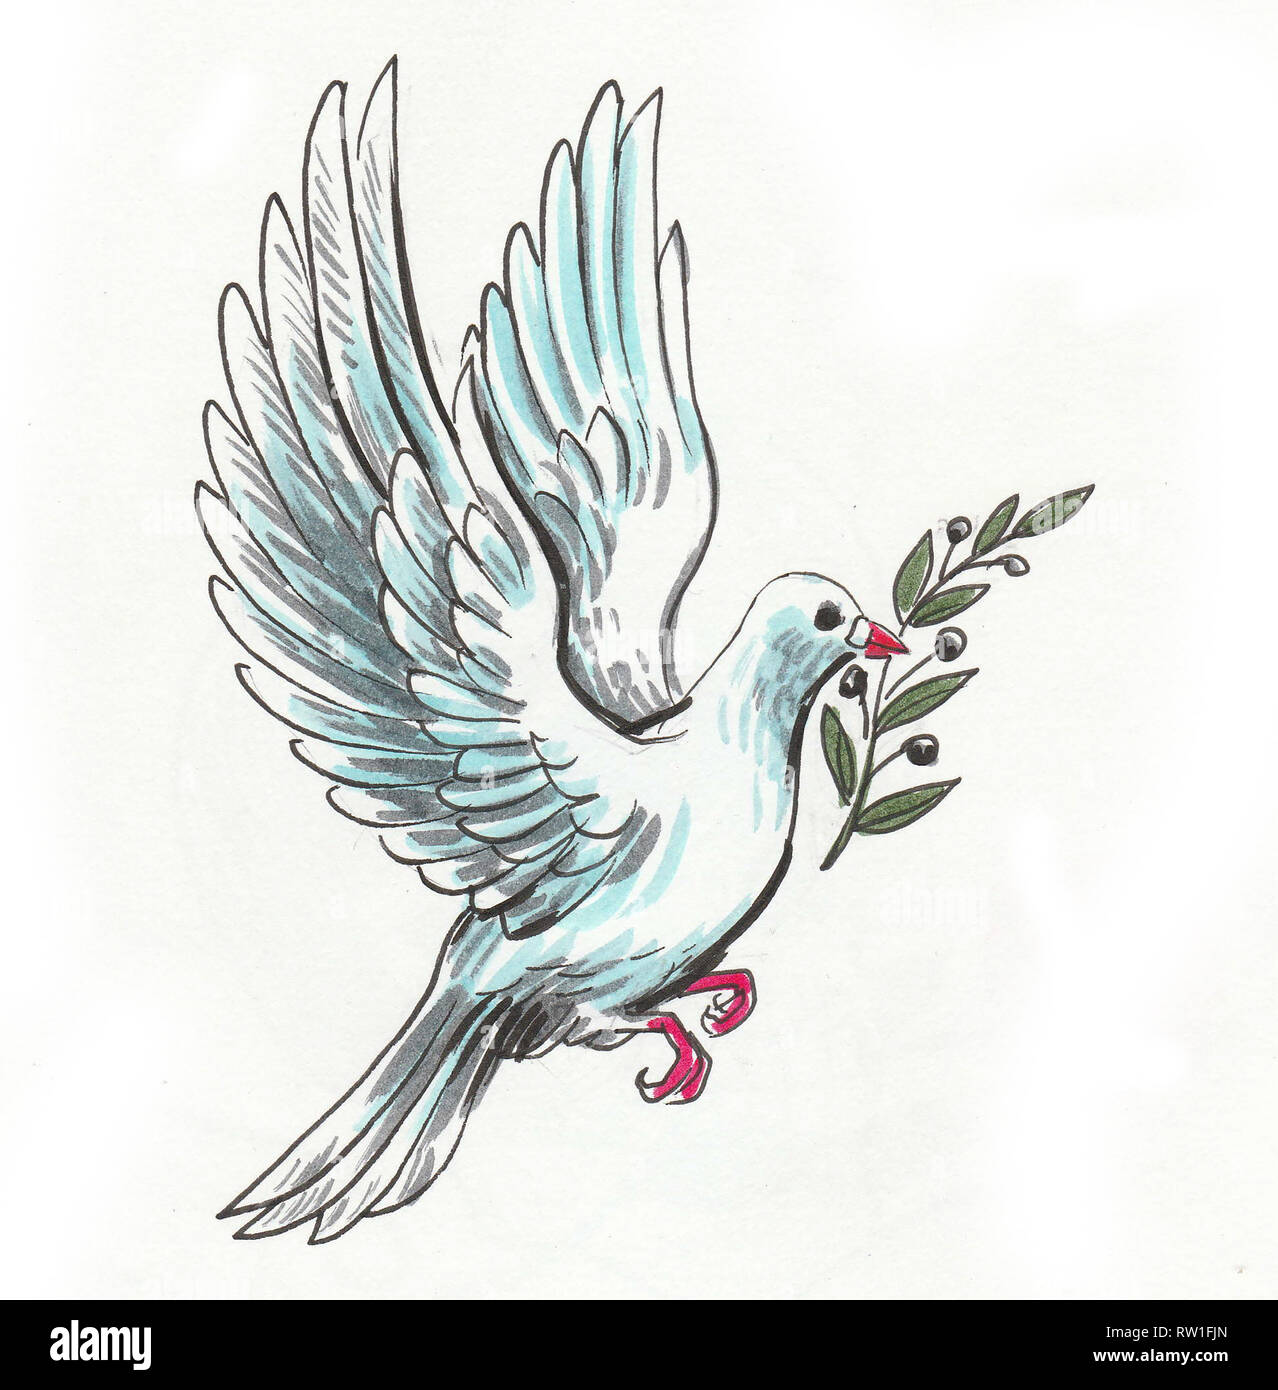 Flying Dove Of Peace With Olive Branch Ink And Watercolor Illustration Stock Photo Alamy